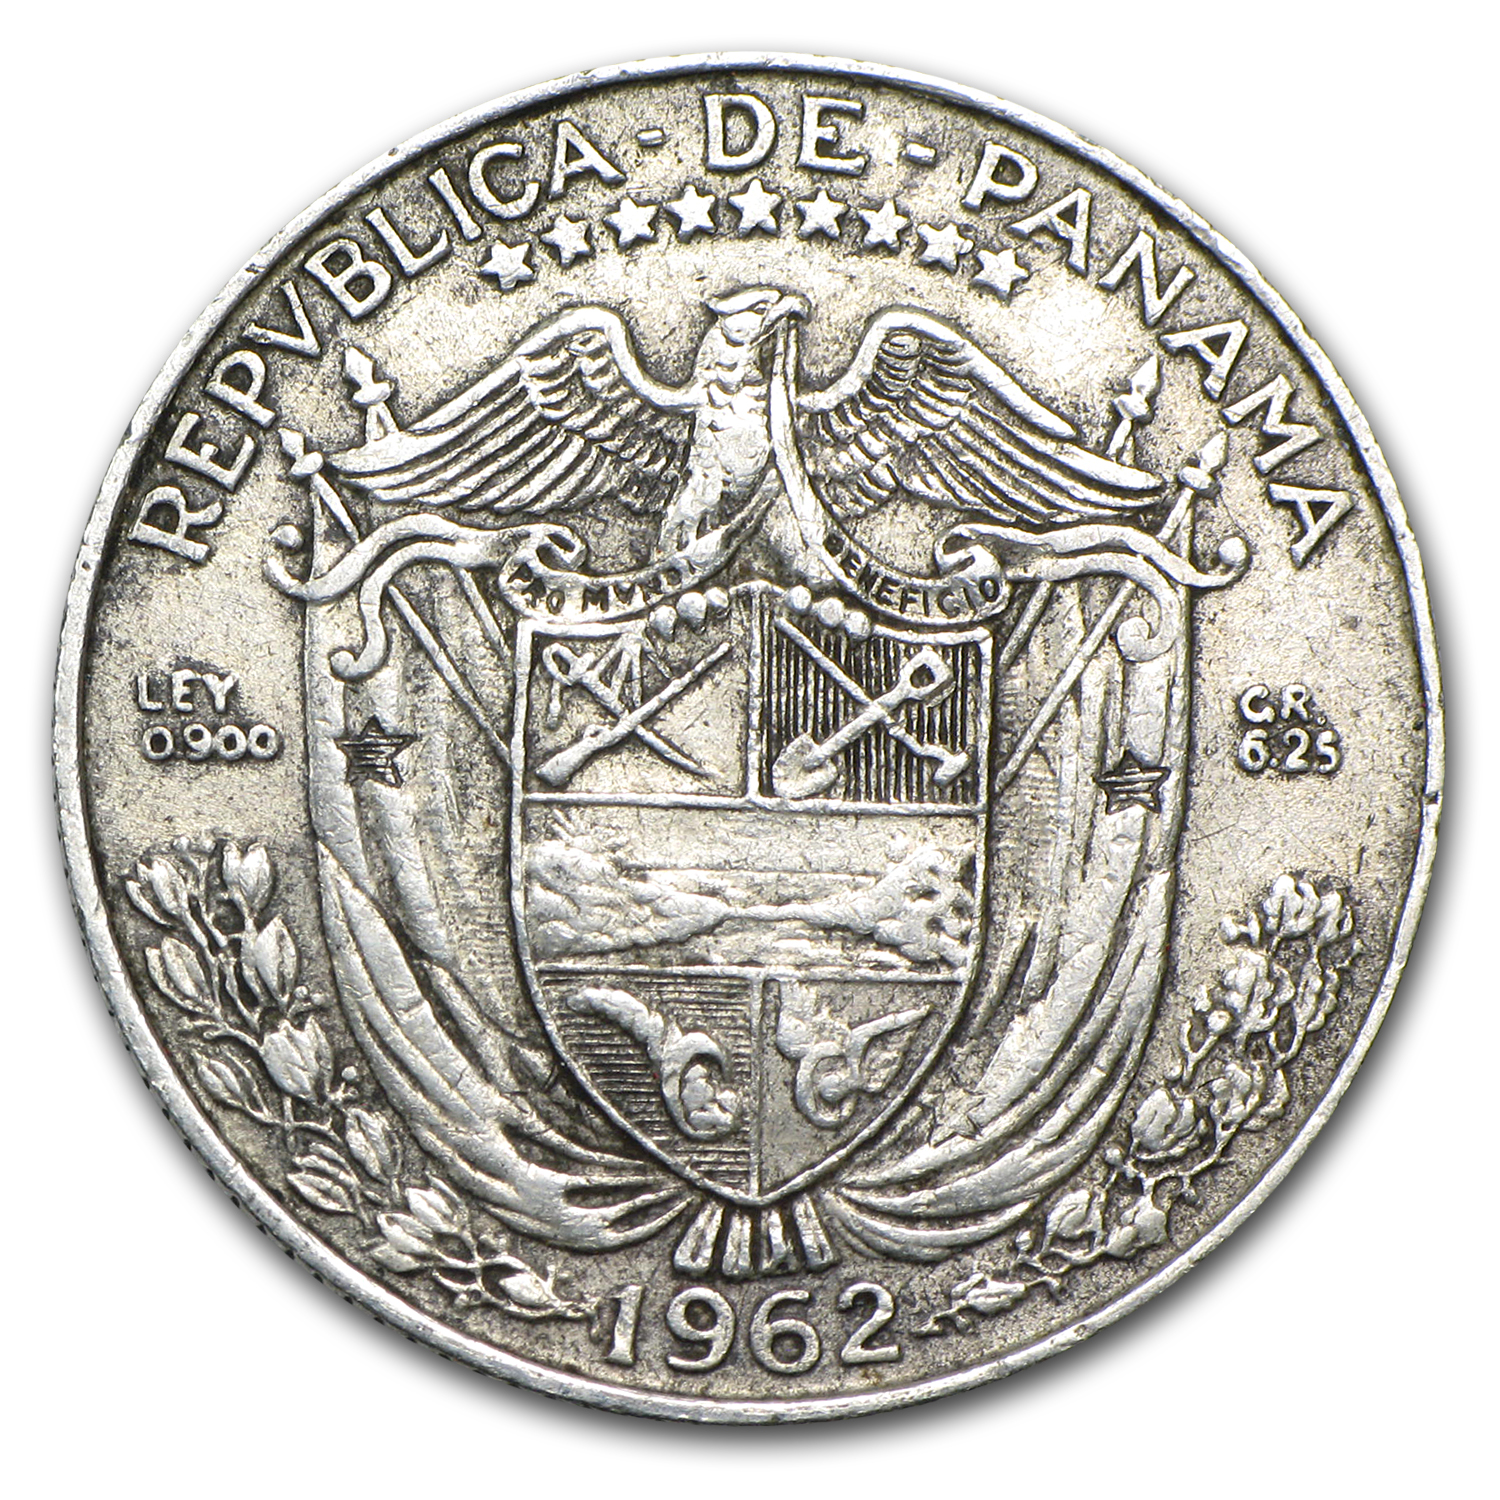 Panama 1/4 Balboa (90% Silver) Average Circulated